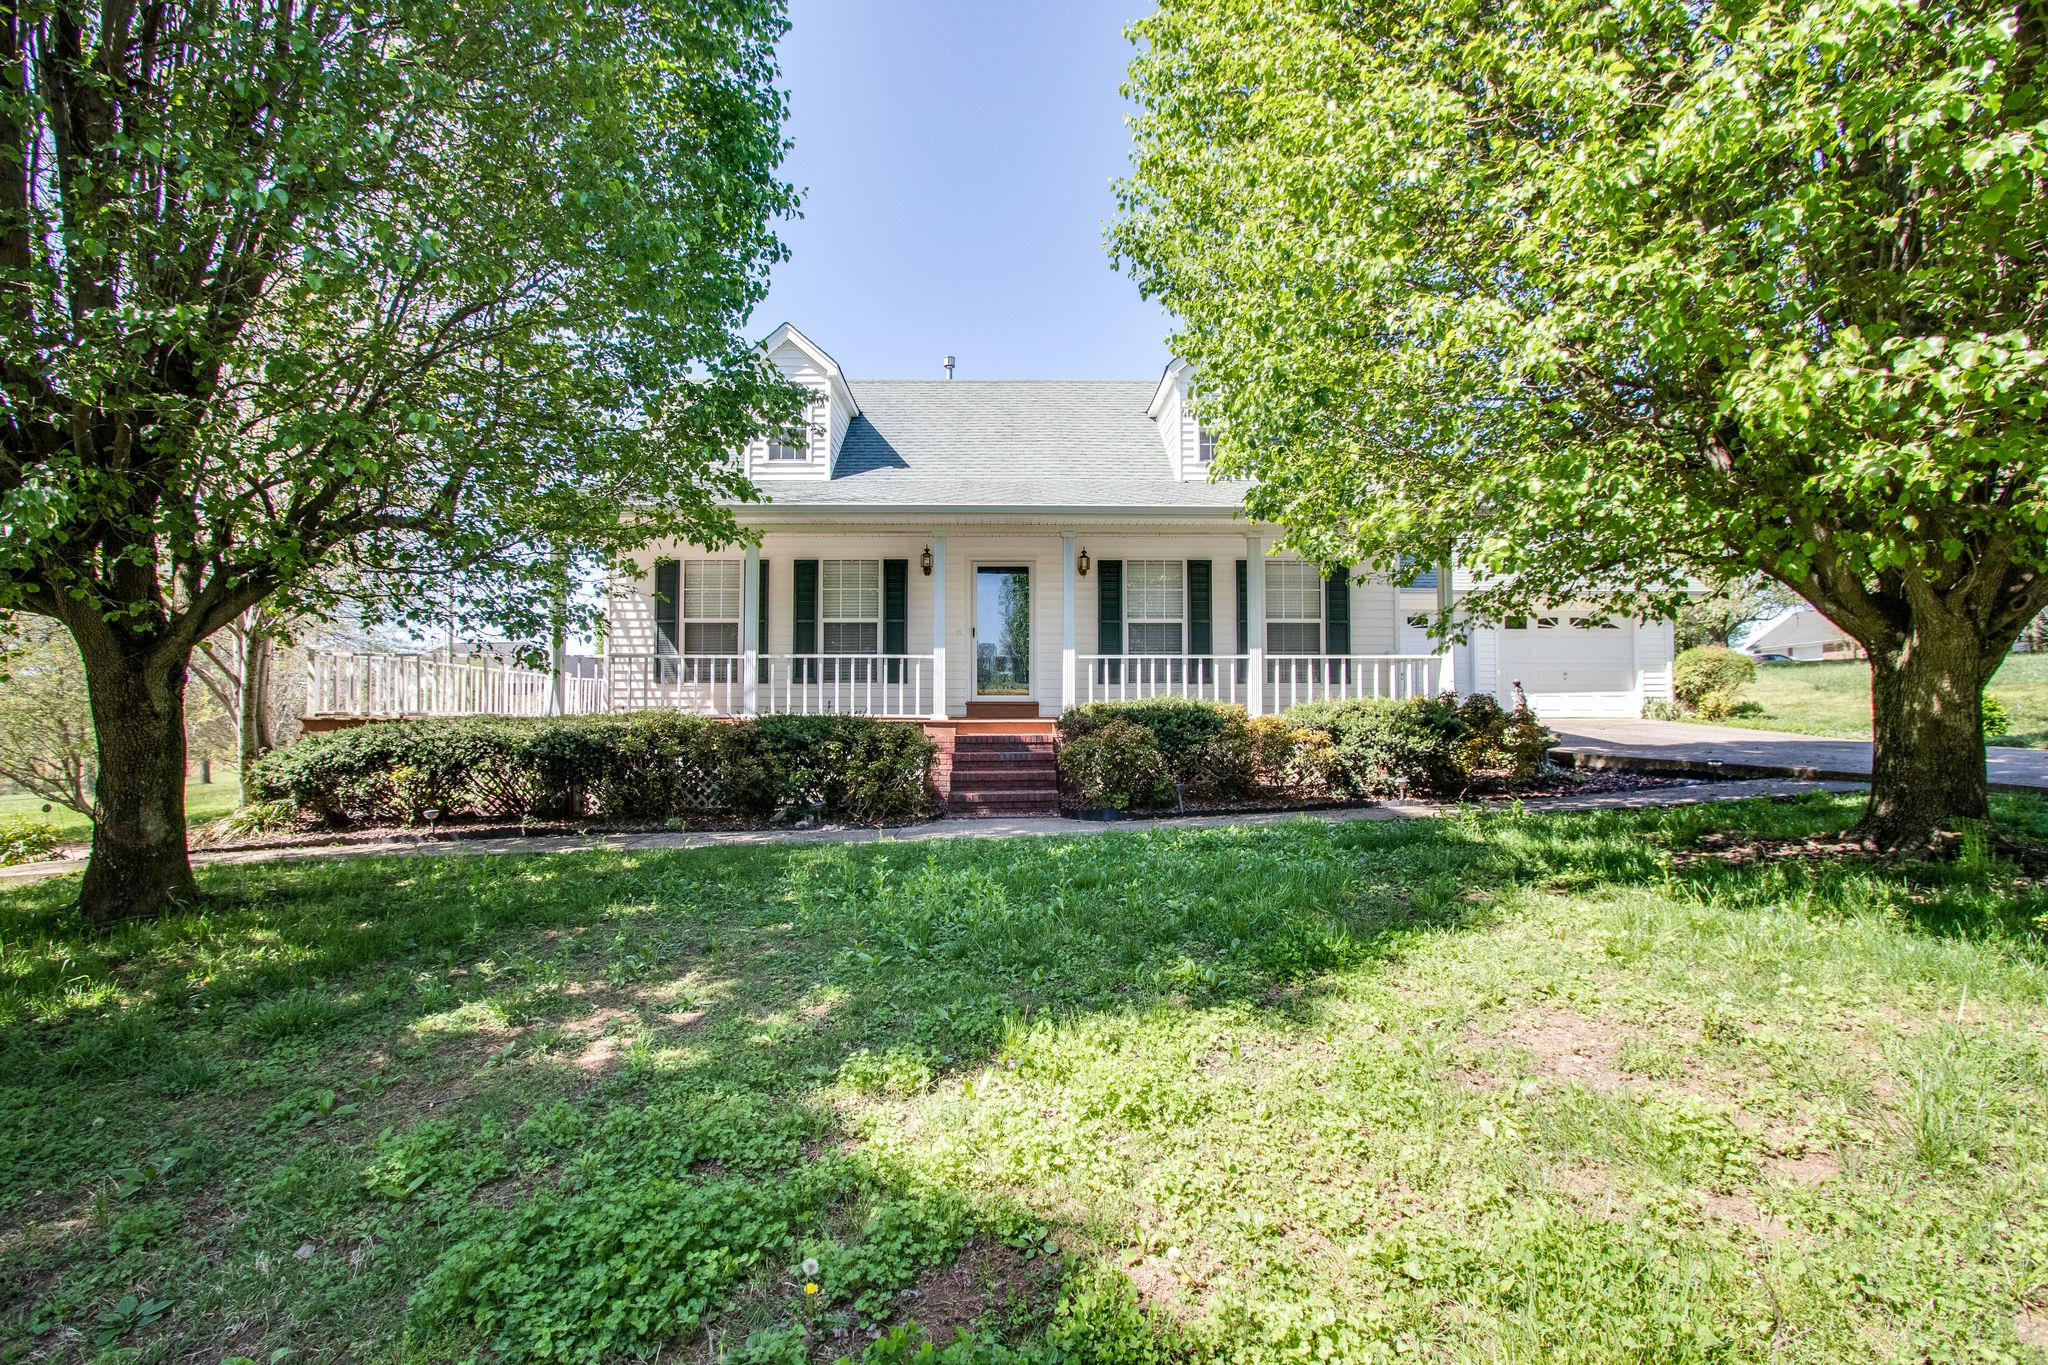 12 Pettross Dr, Carthage, TN 37030 - Carthage, TN real estate listing